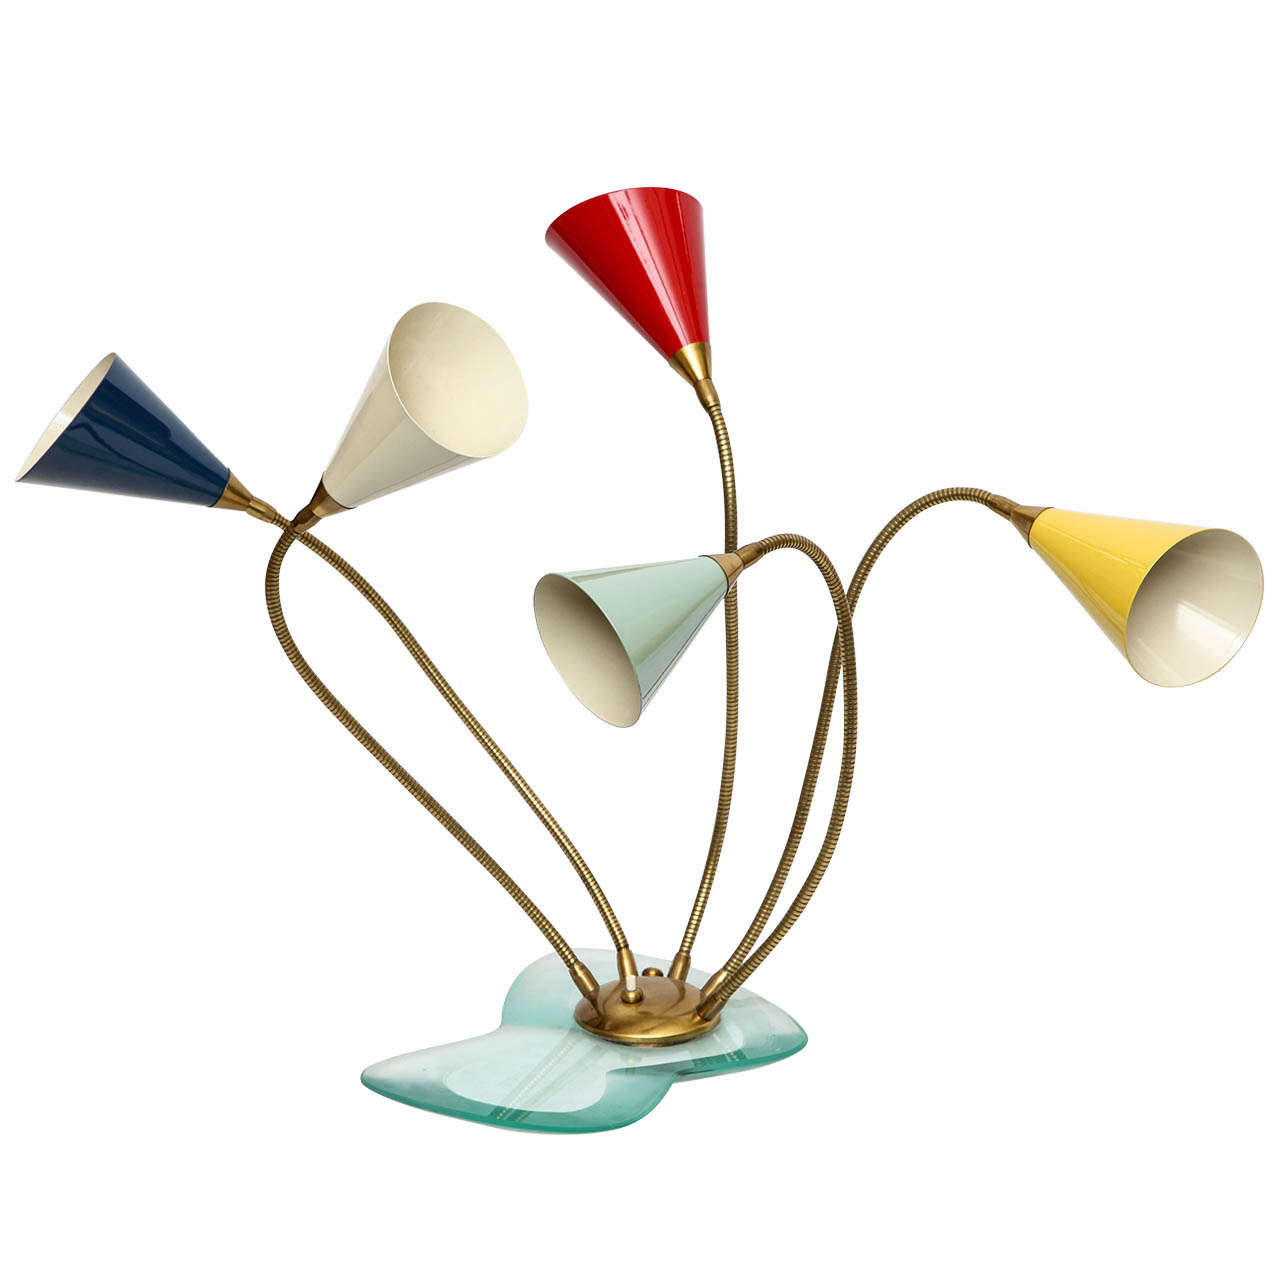 Italian 1950s Articulated Table Lamp at 1stdibs